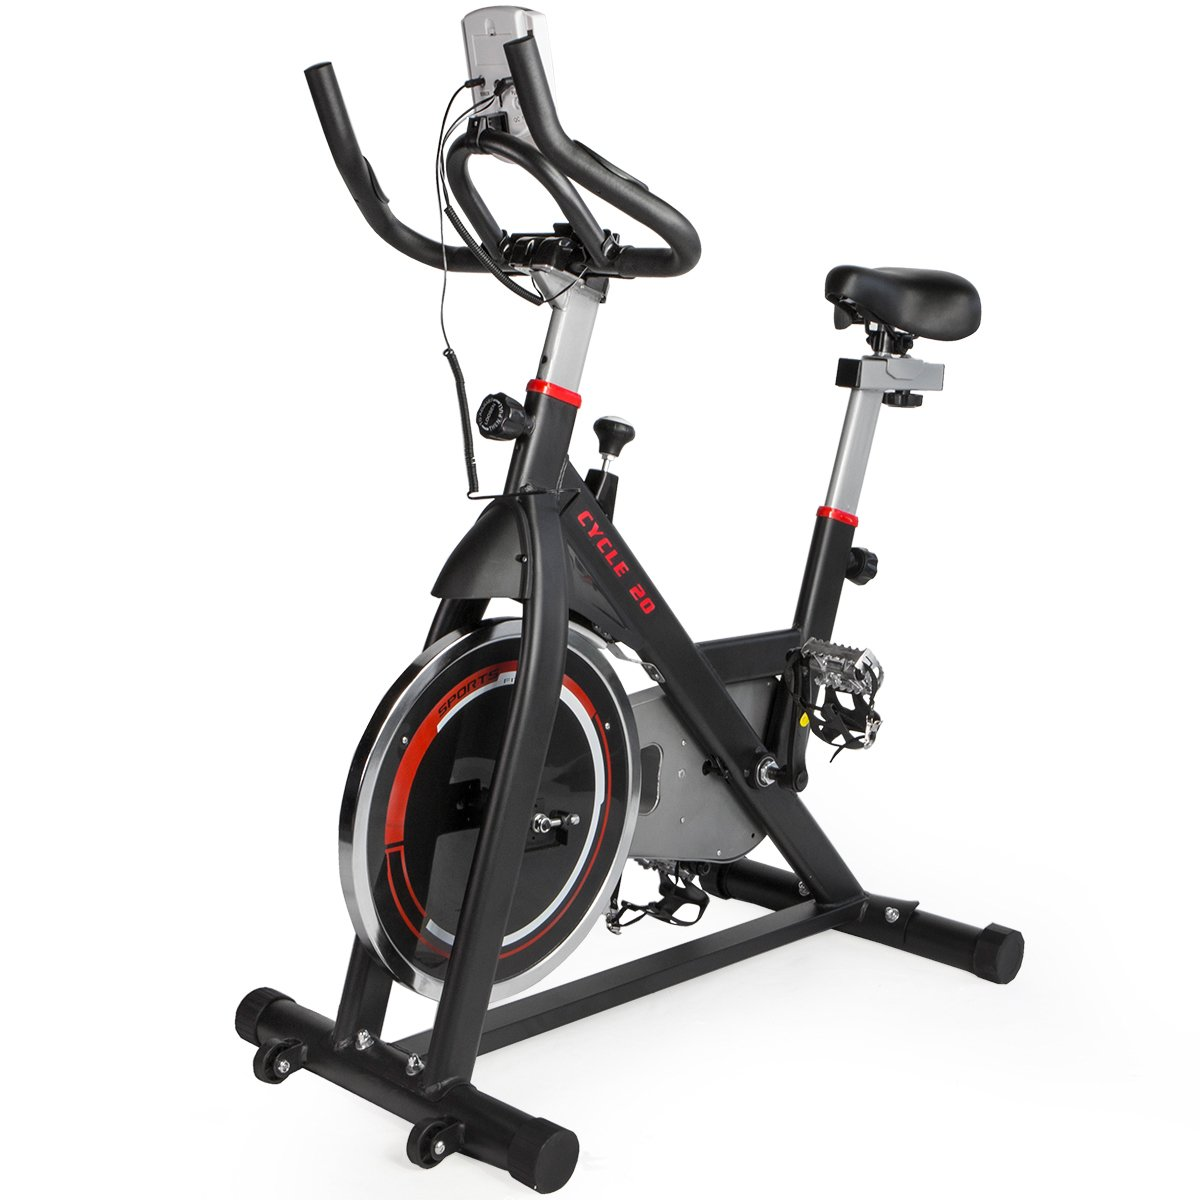 XtremepowerUS Cycle 20 Exercise Bike Stationary Cushion Indoor Cycling Bicycle Heart Pulse Adjustable w/ 20lbs Chrome Flywheel, Black/Red